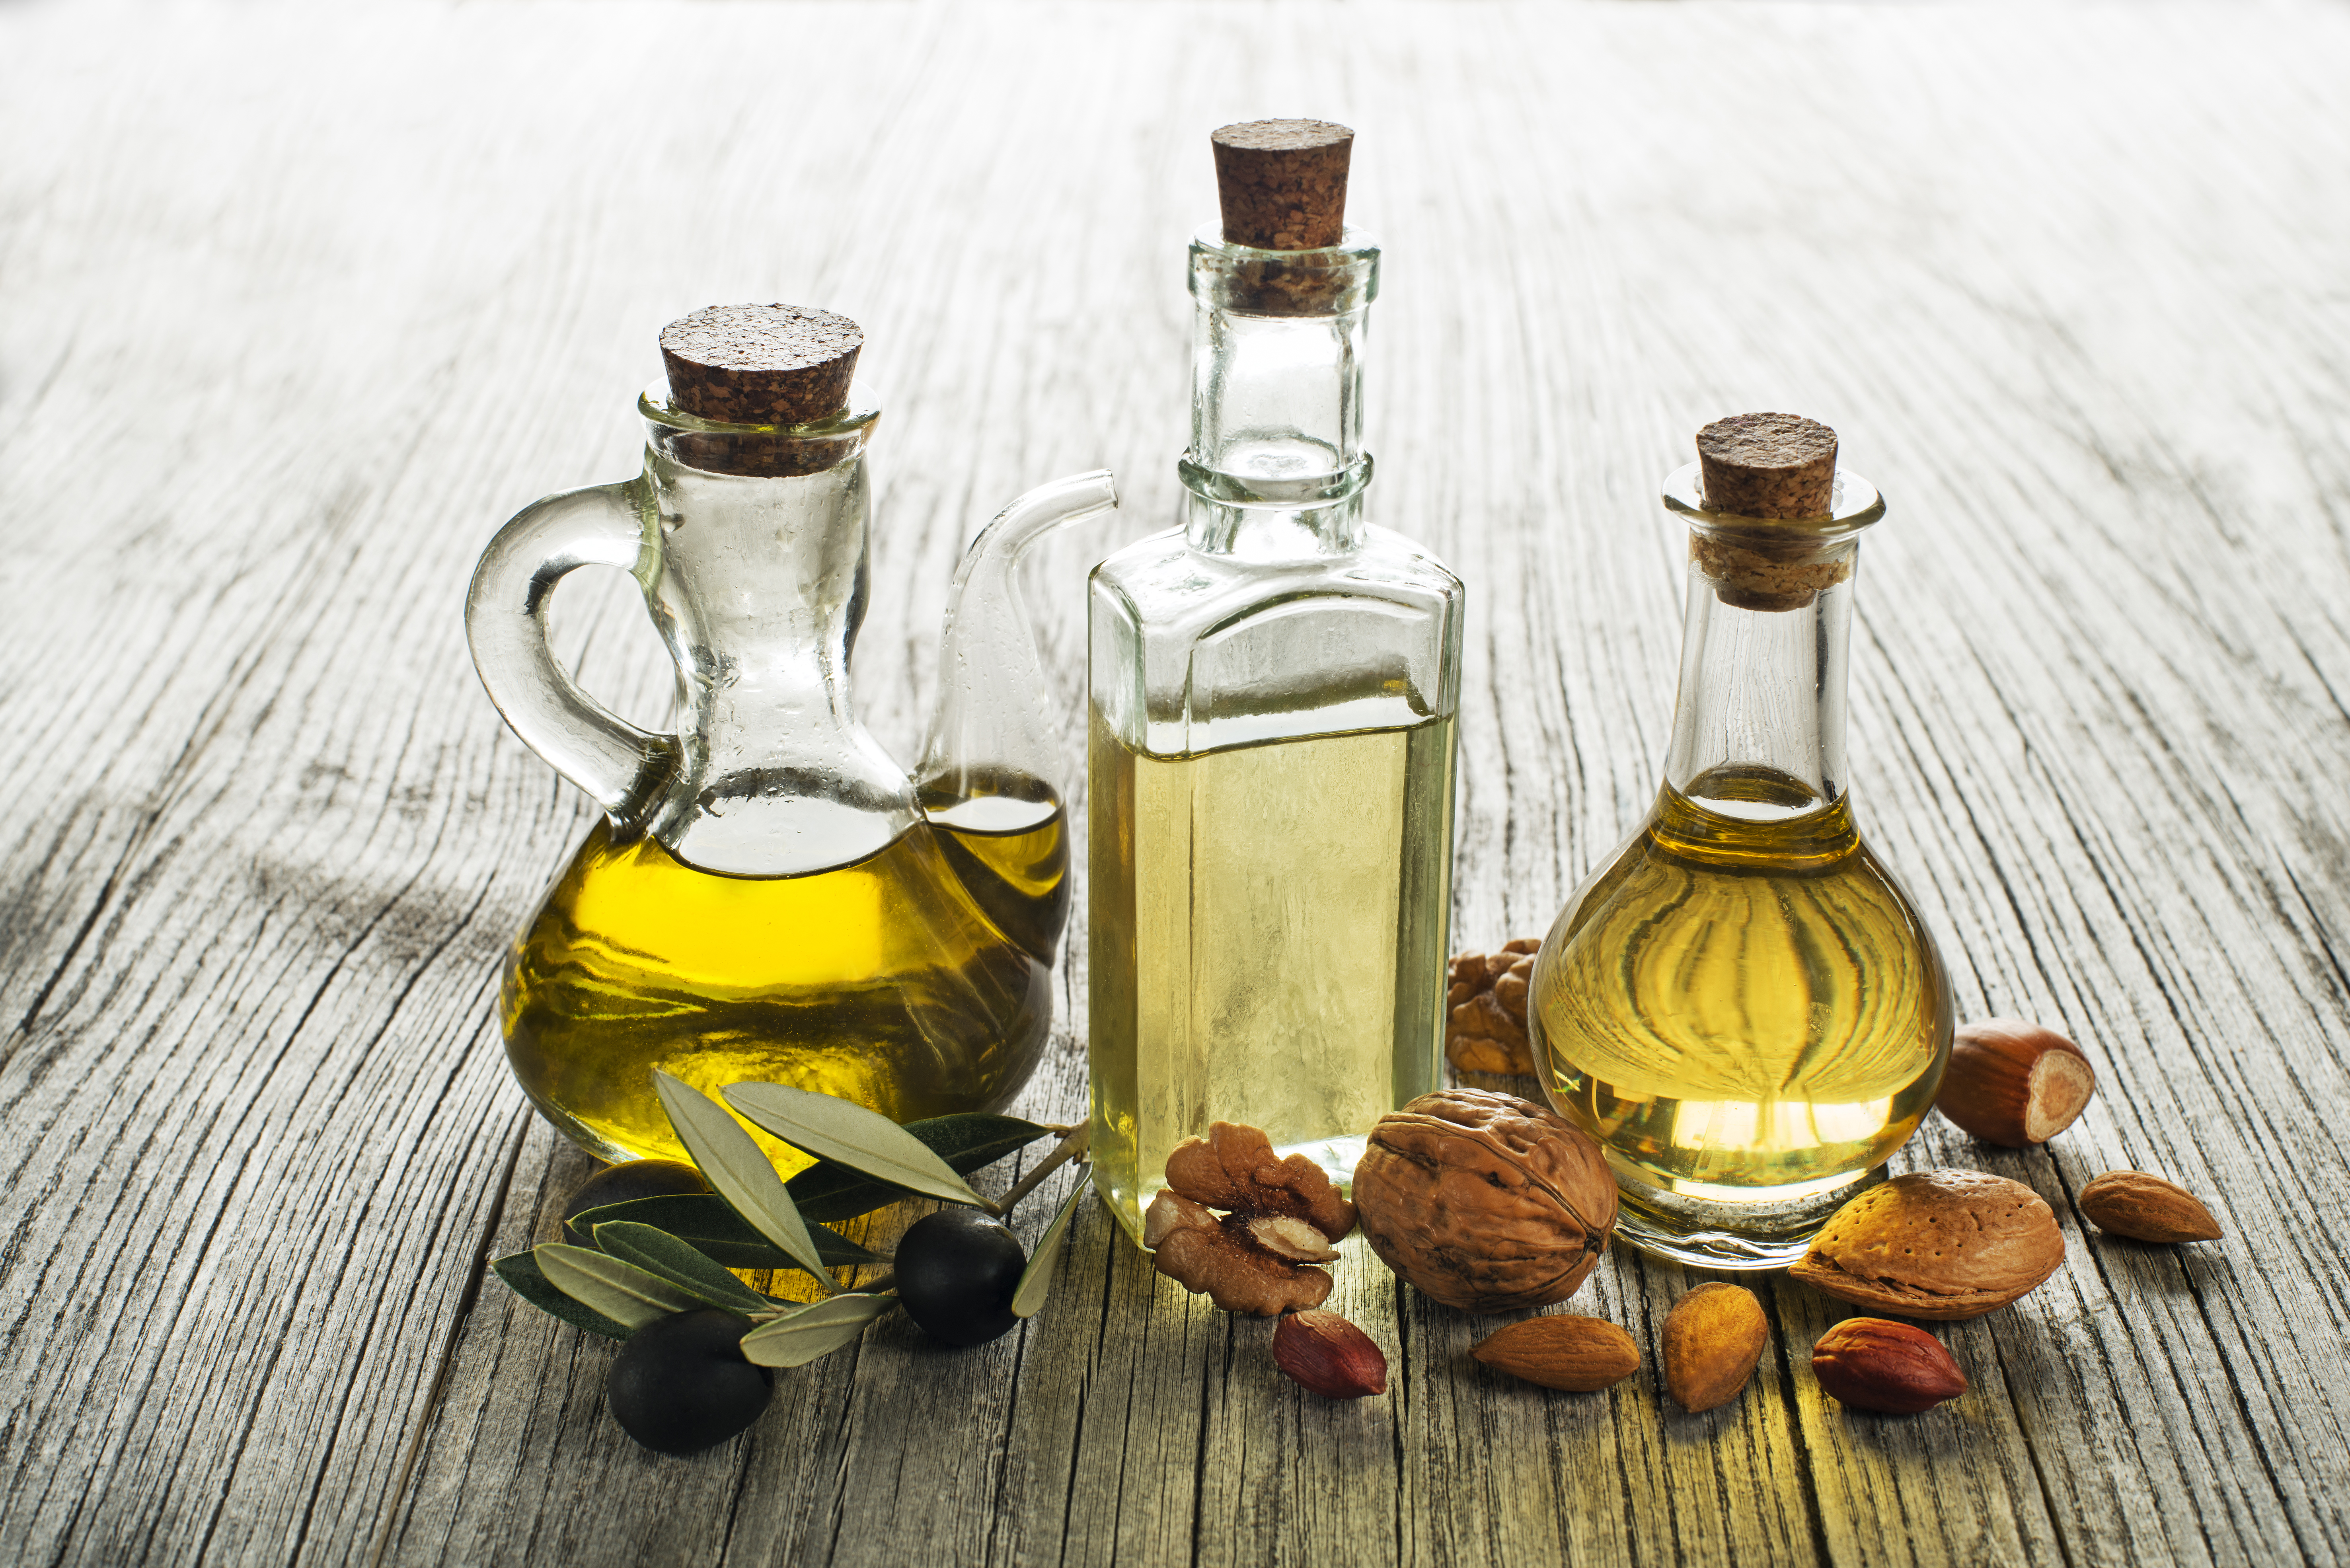 How to Make Glycerin From Vegetable Oil | Sciencing